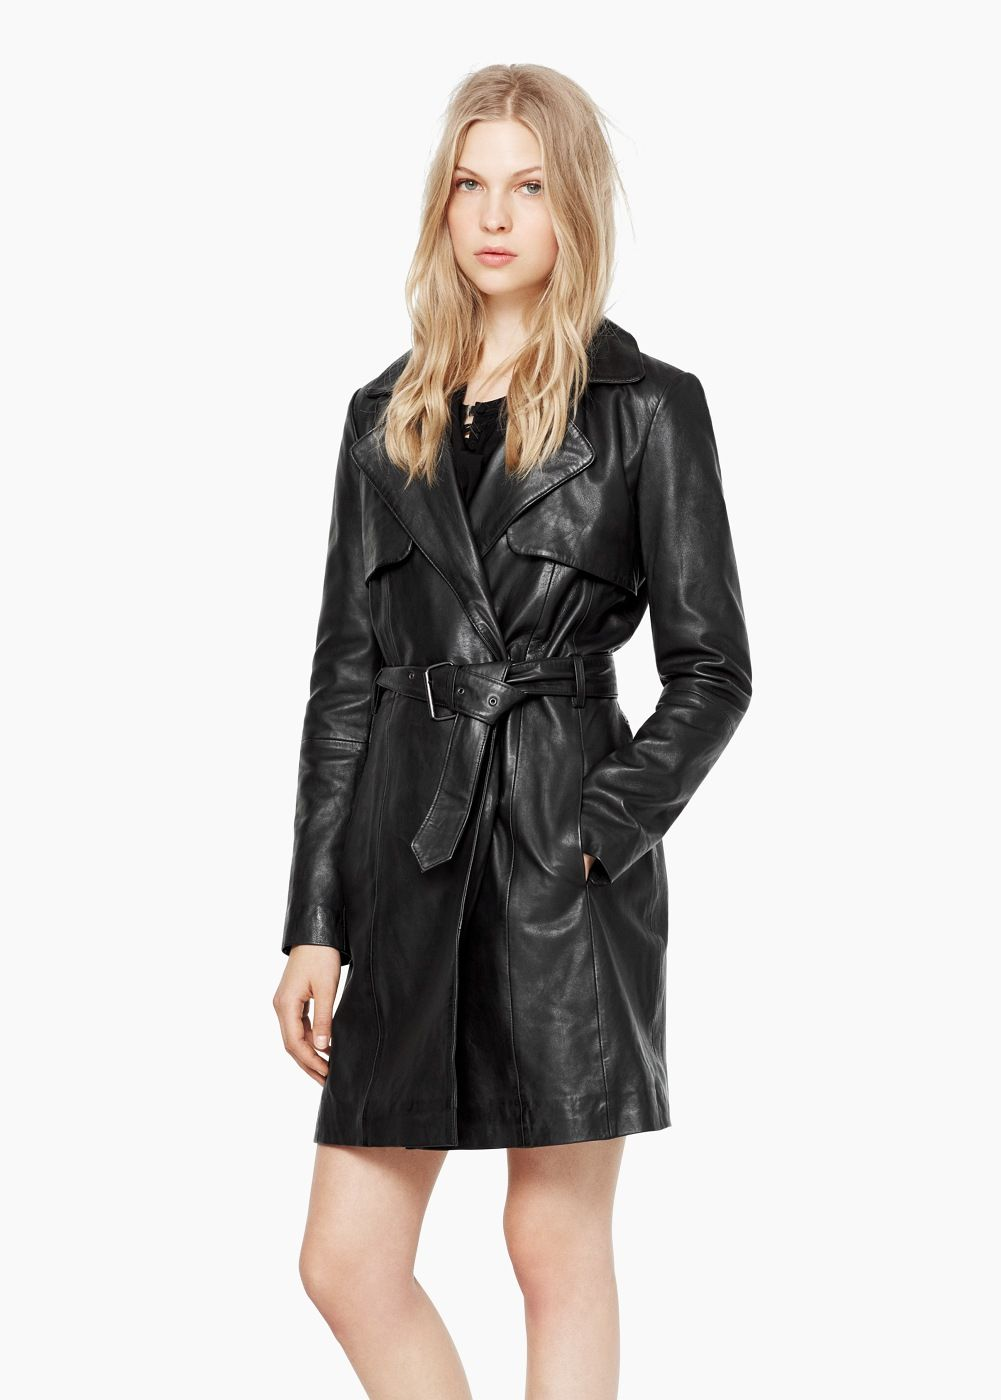 Leather trench - Coats for Women  fe5bb4fdf